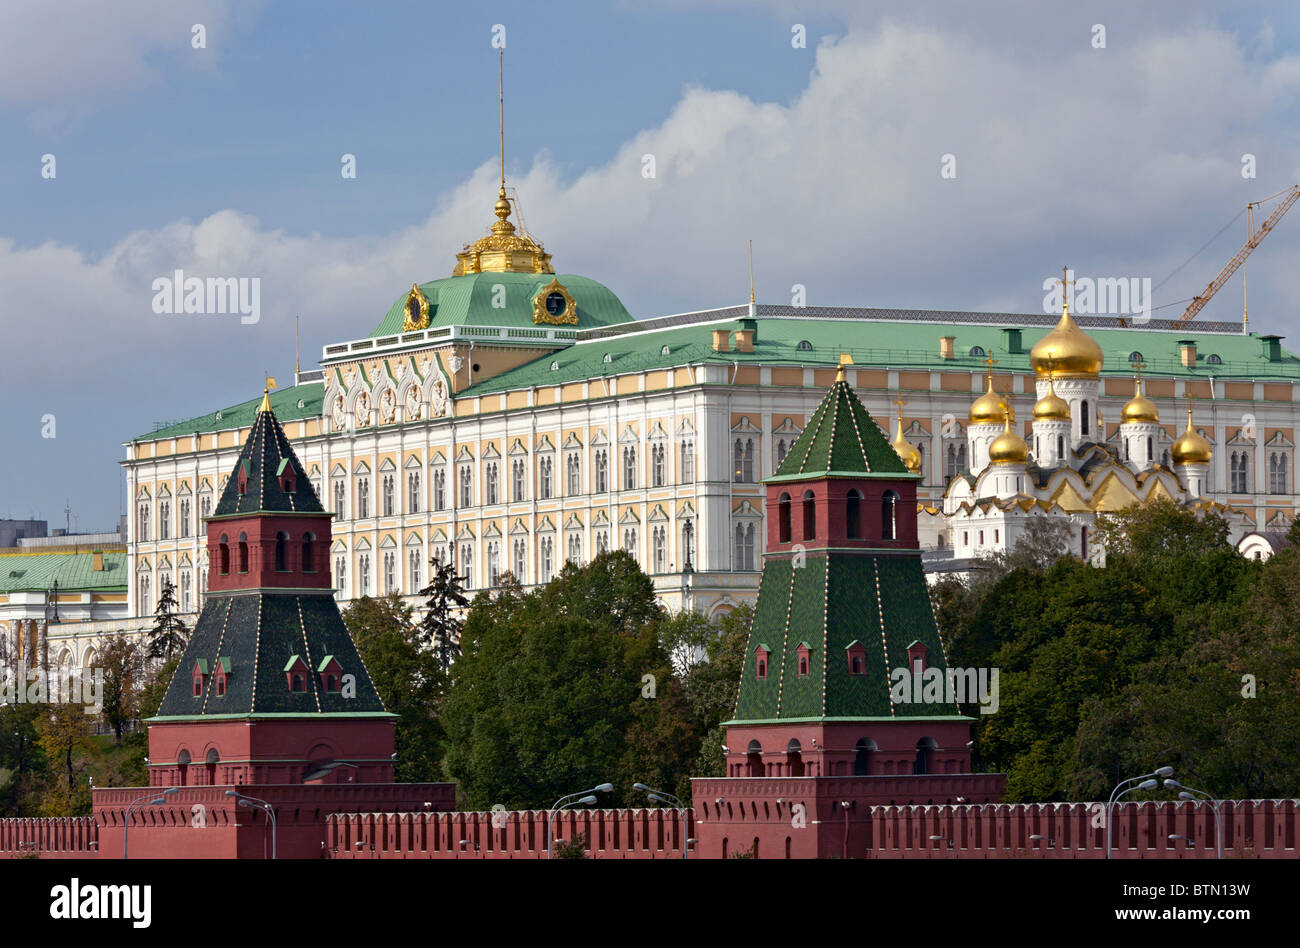 Grand Kremlin Palace, Moscow, Russia Was built in 1837-1849 - Stock Image